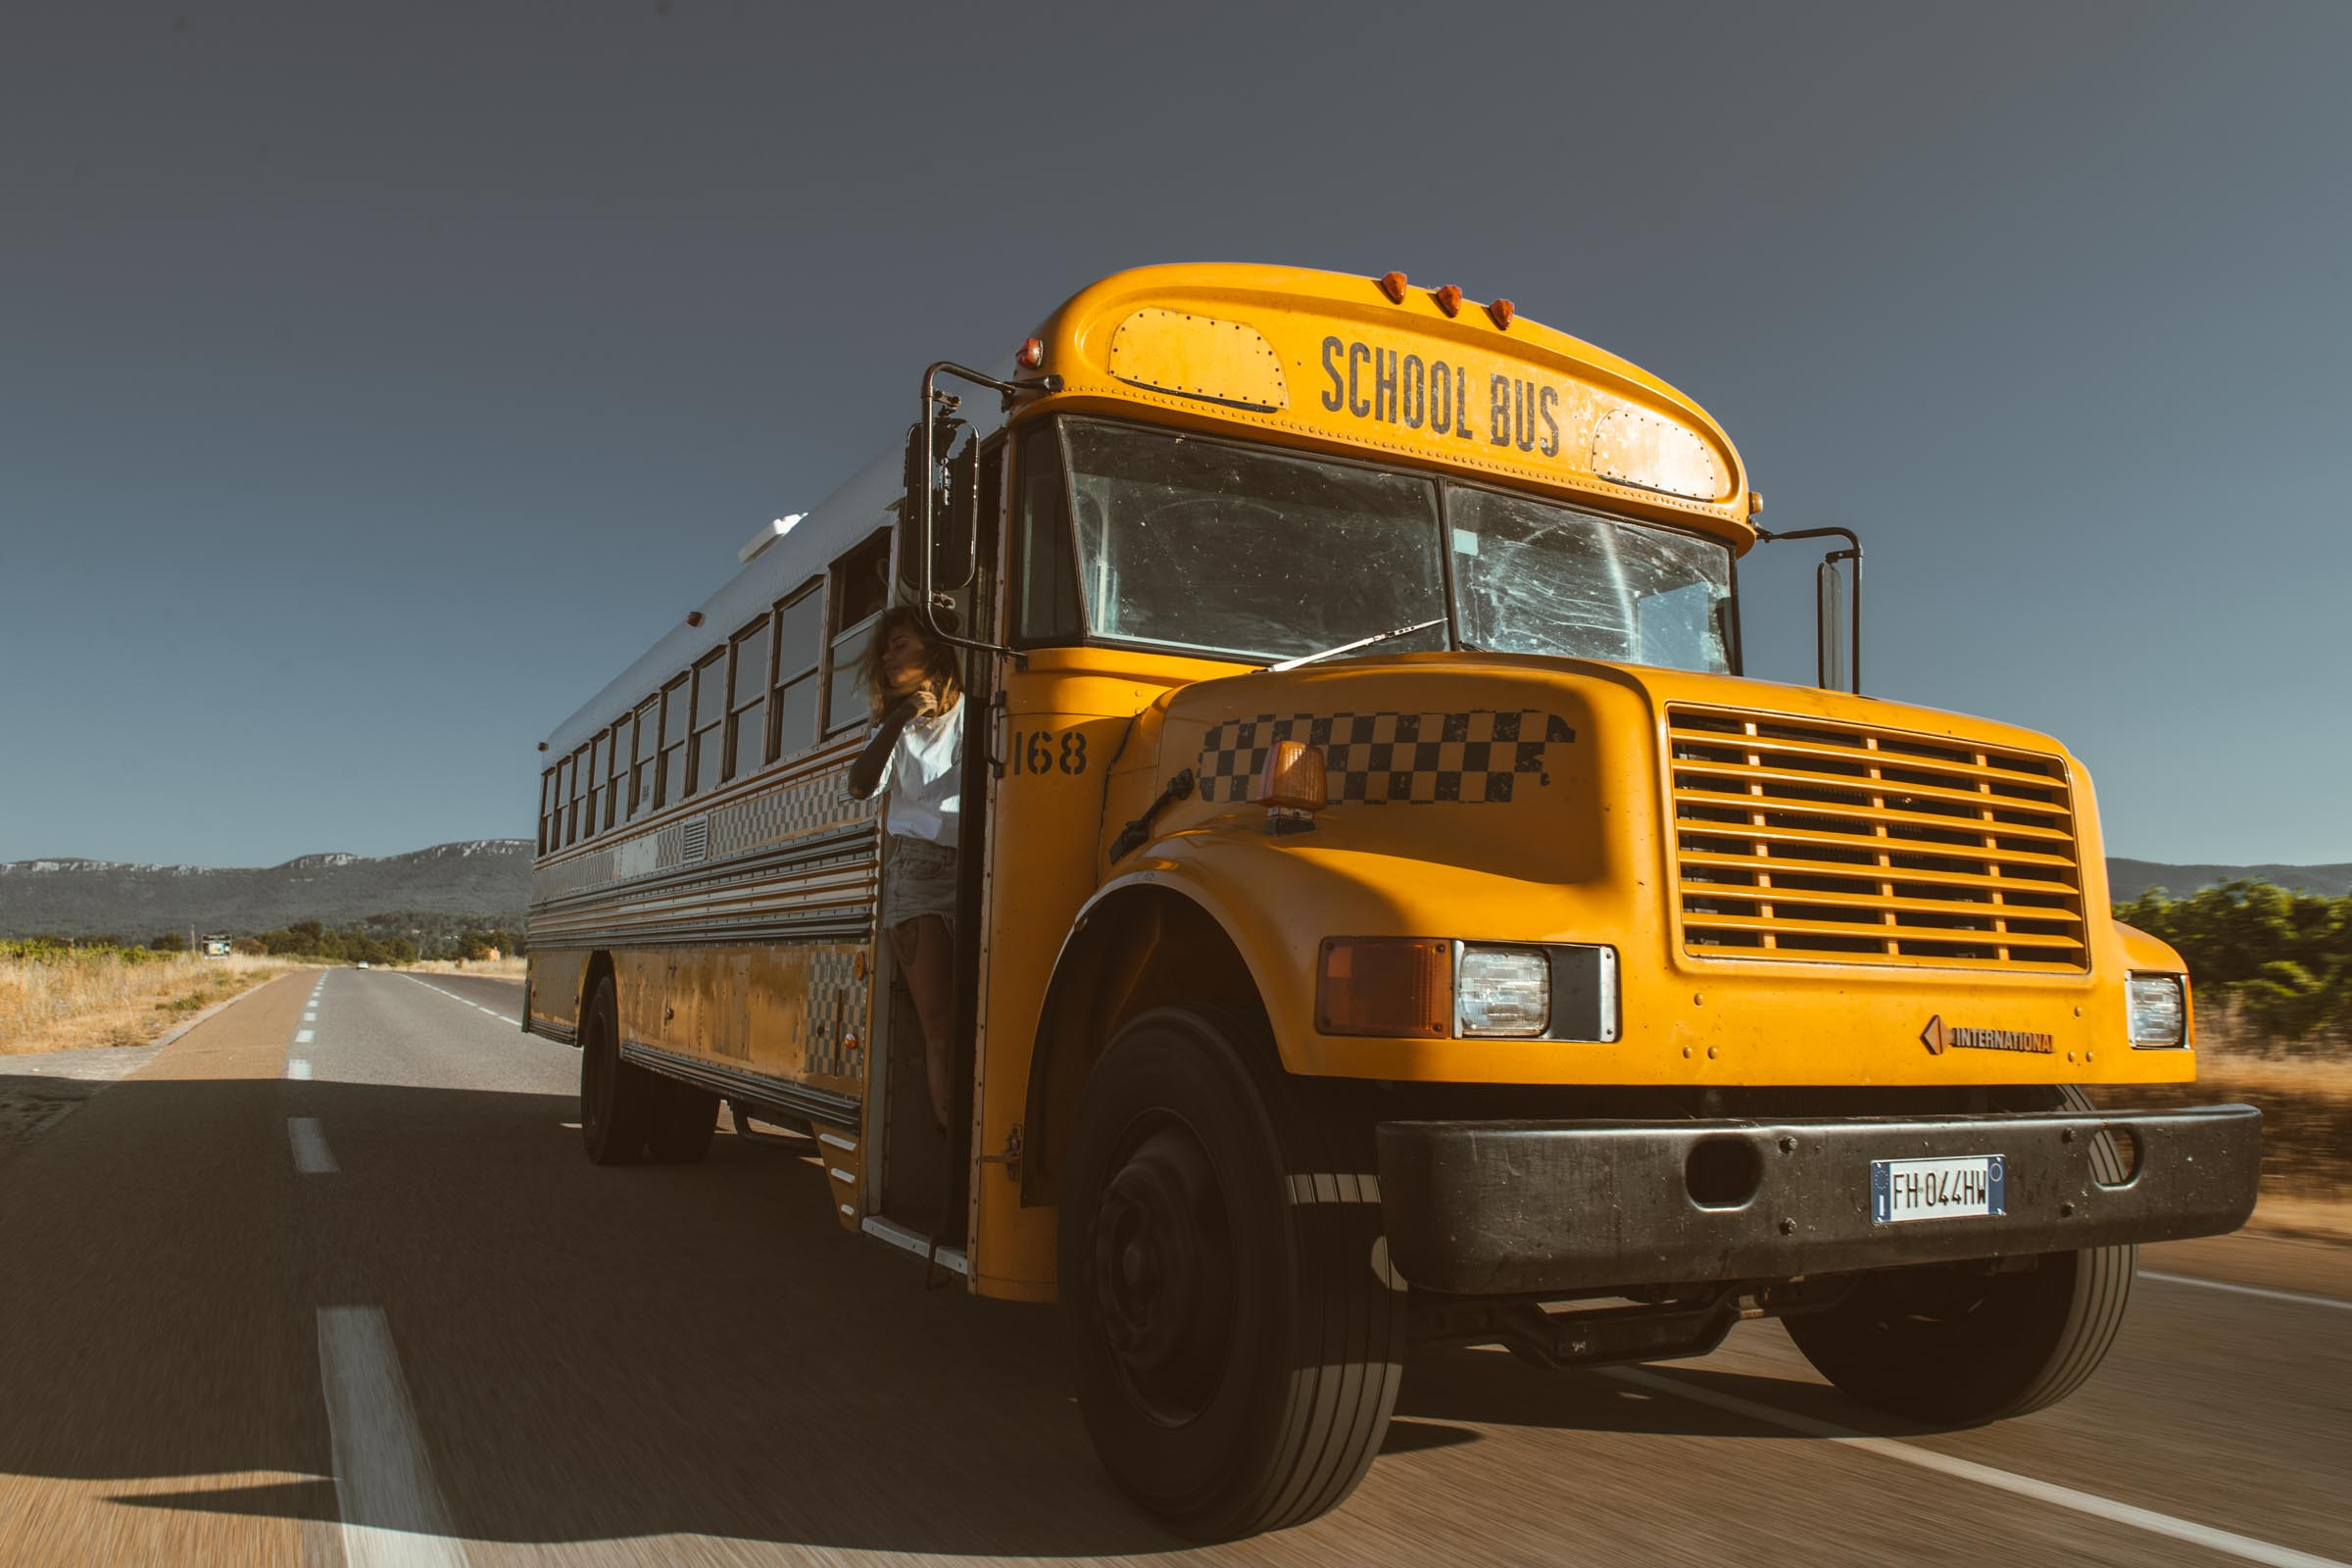 _School Bus 2 by officine Vivaldi 1 44